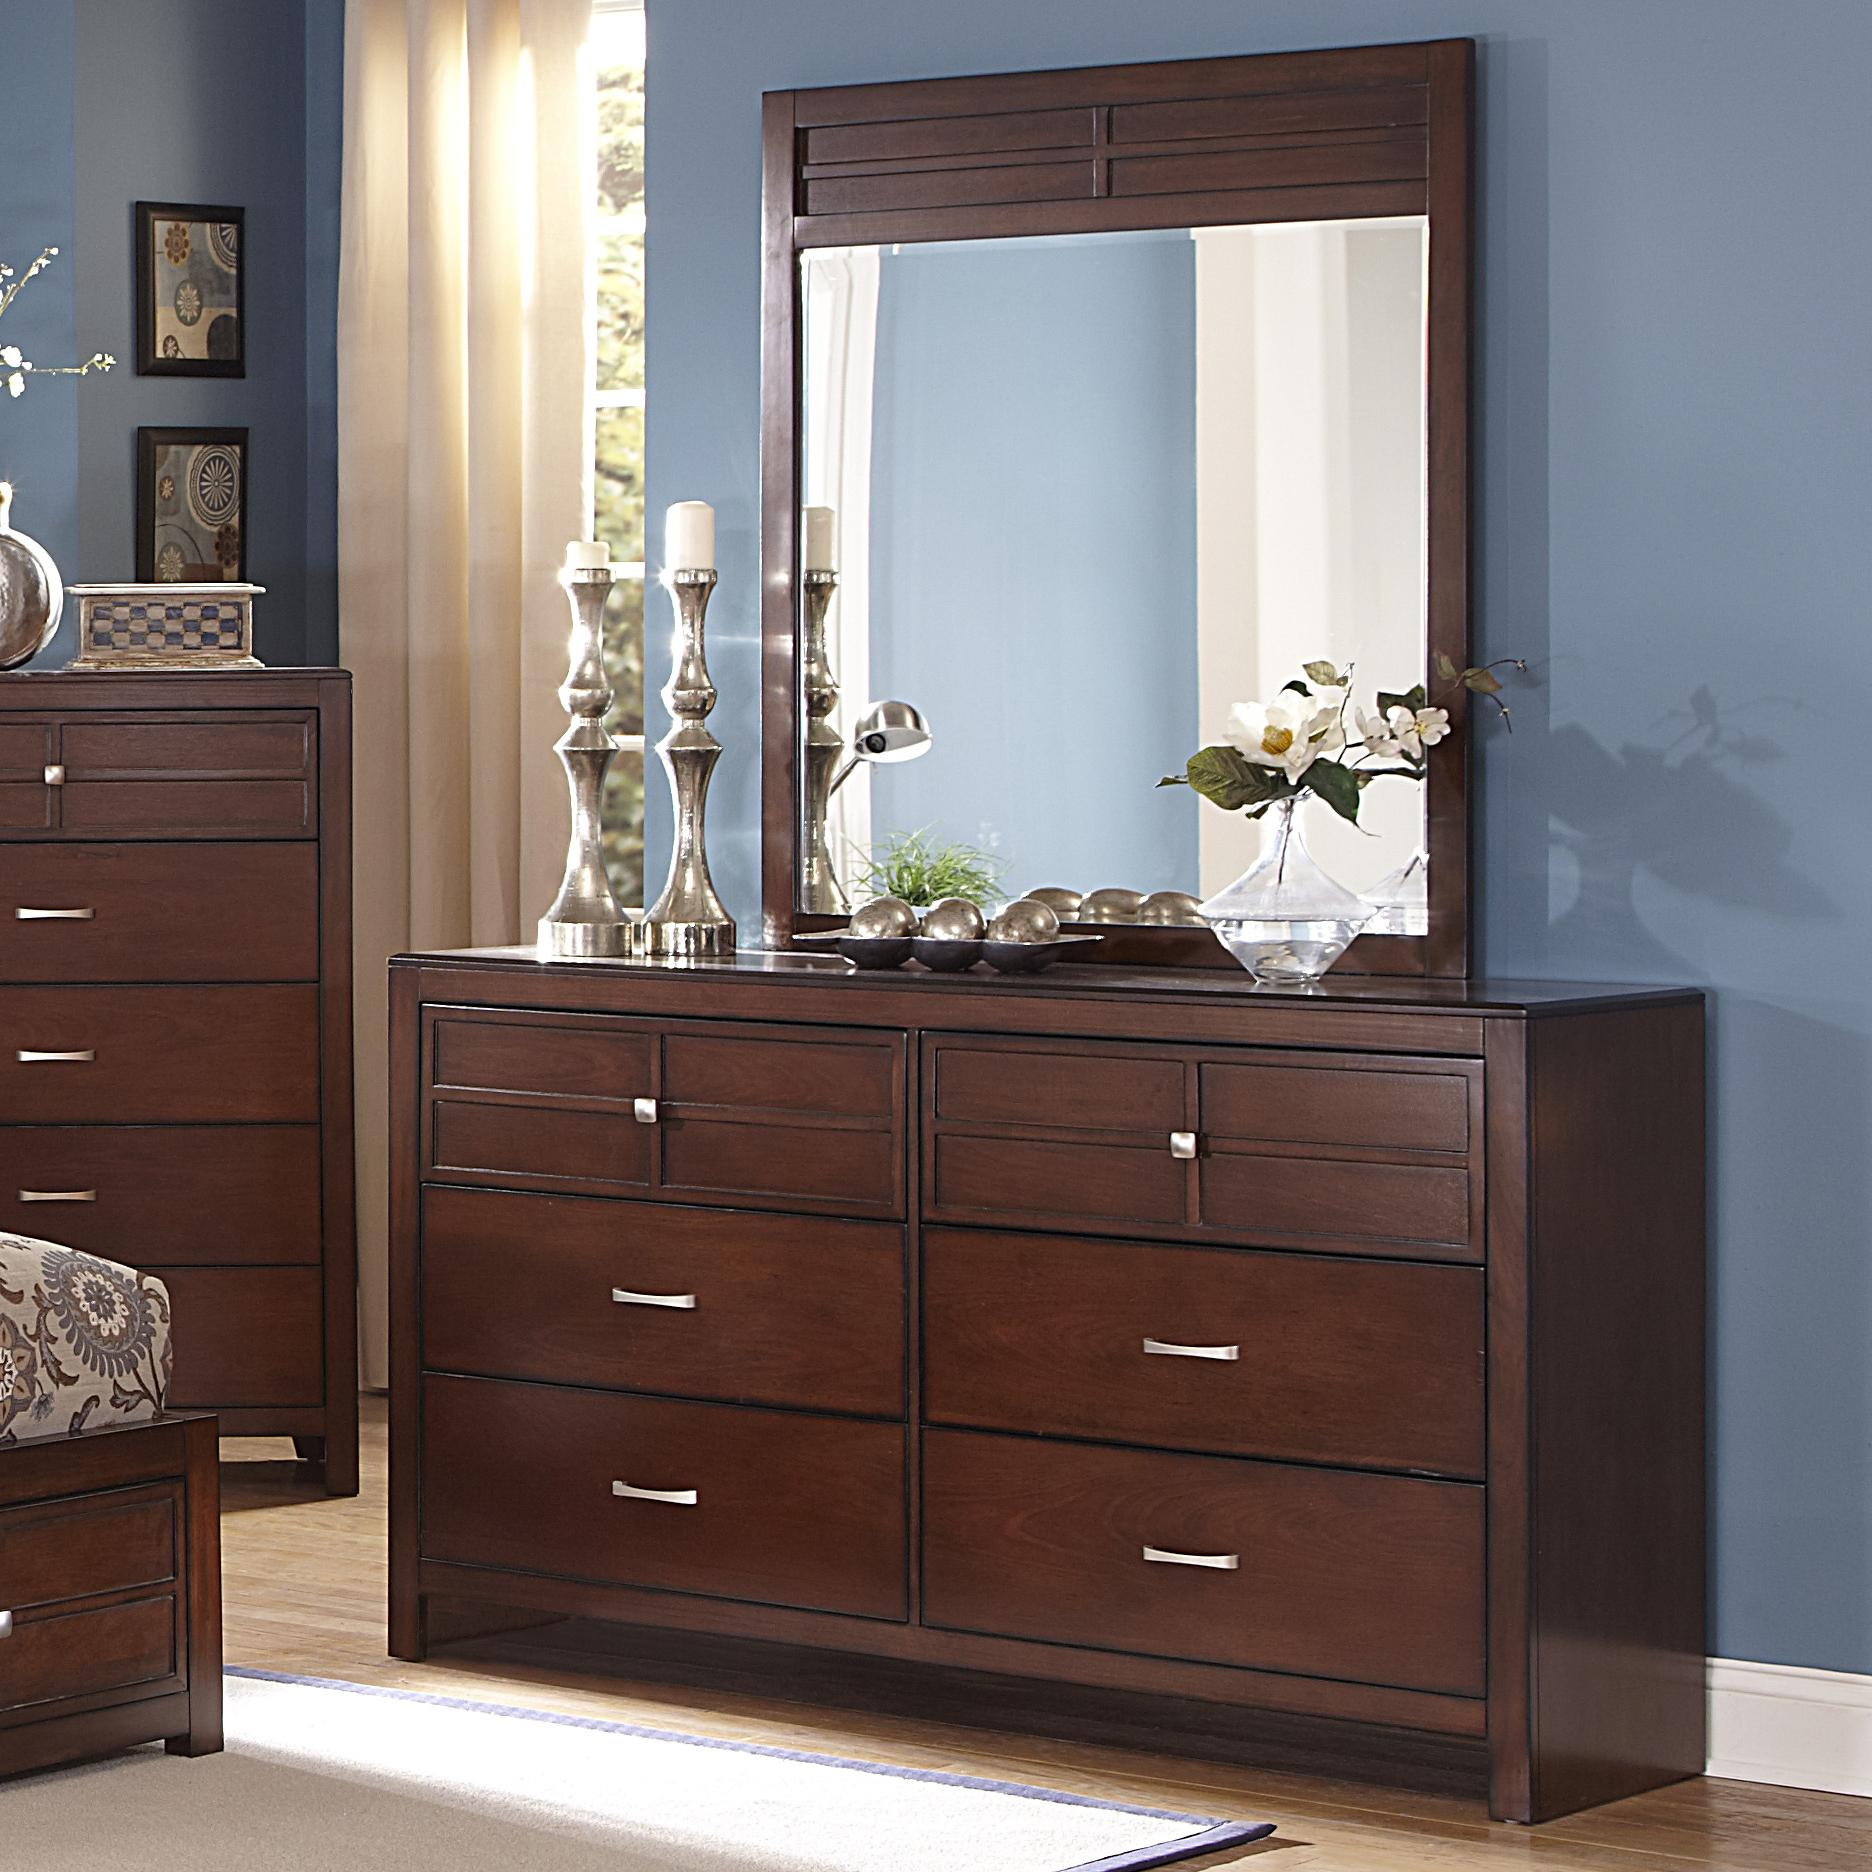 6-Drawer Dresser and Vertical Mirror Set by New Classic | Wolf and ...